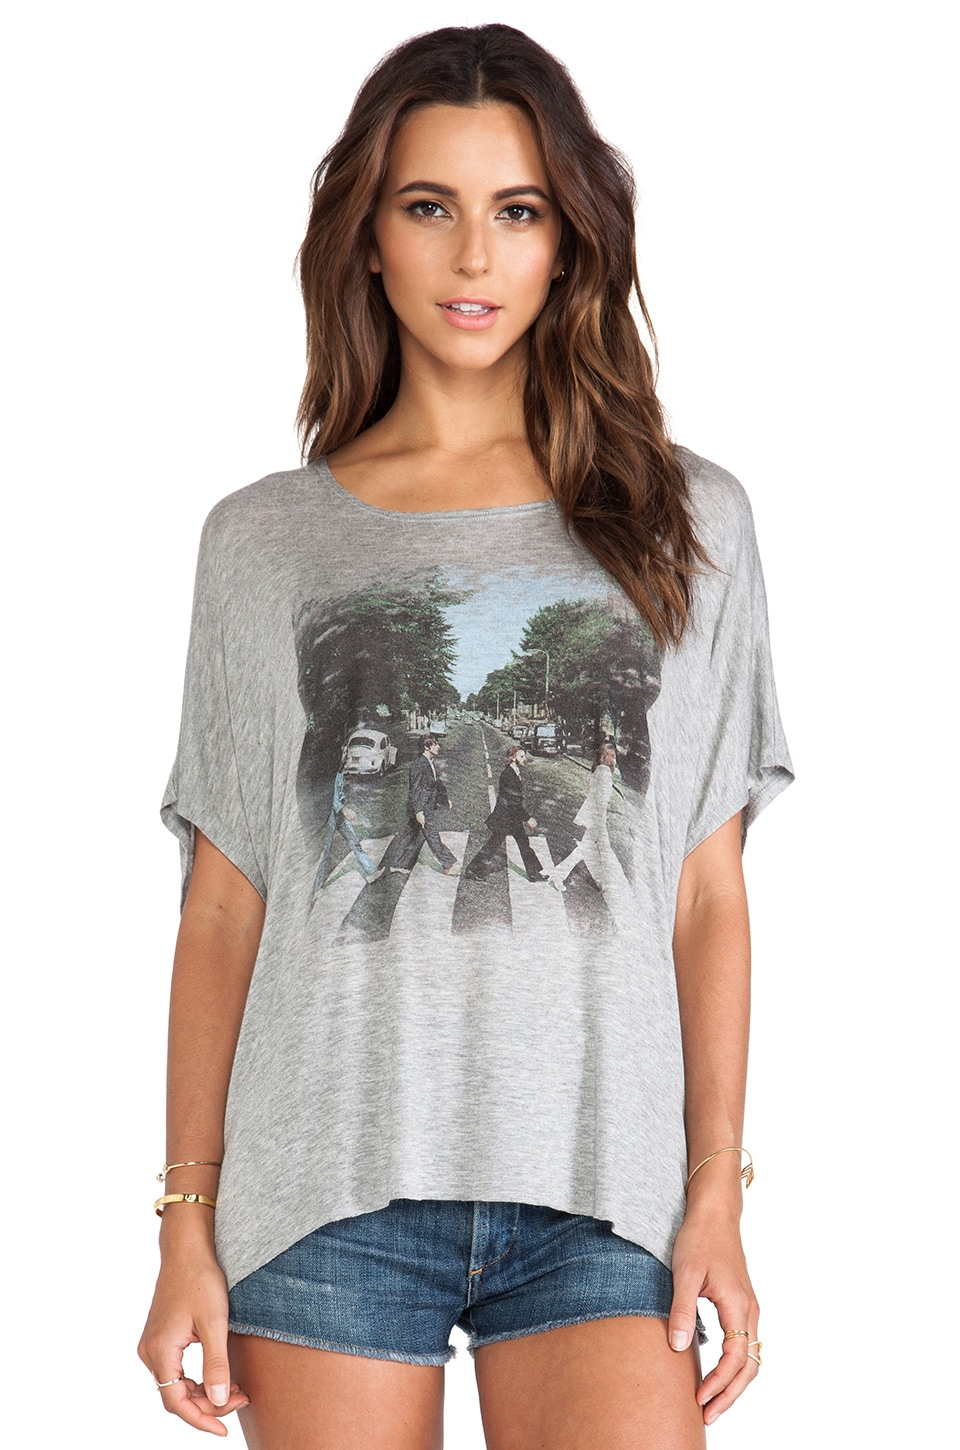 DAYDREAMER Abbey Road Dolman Tee in Heather Grey